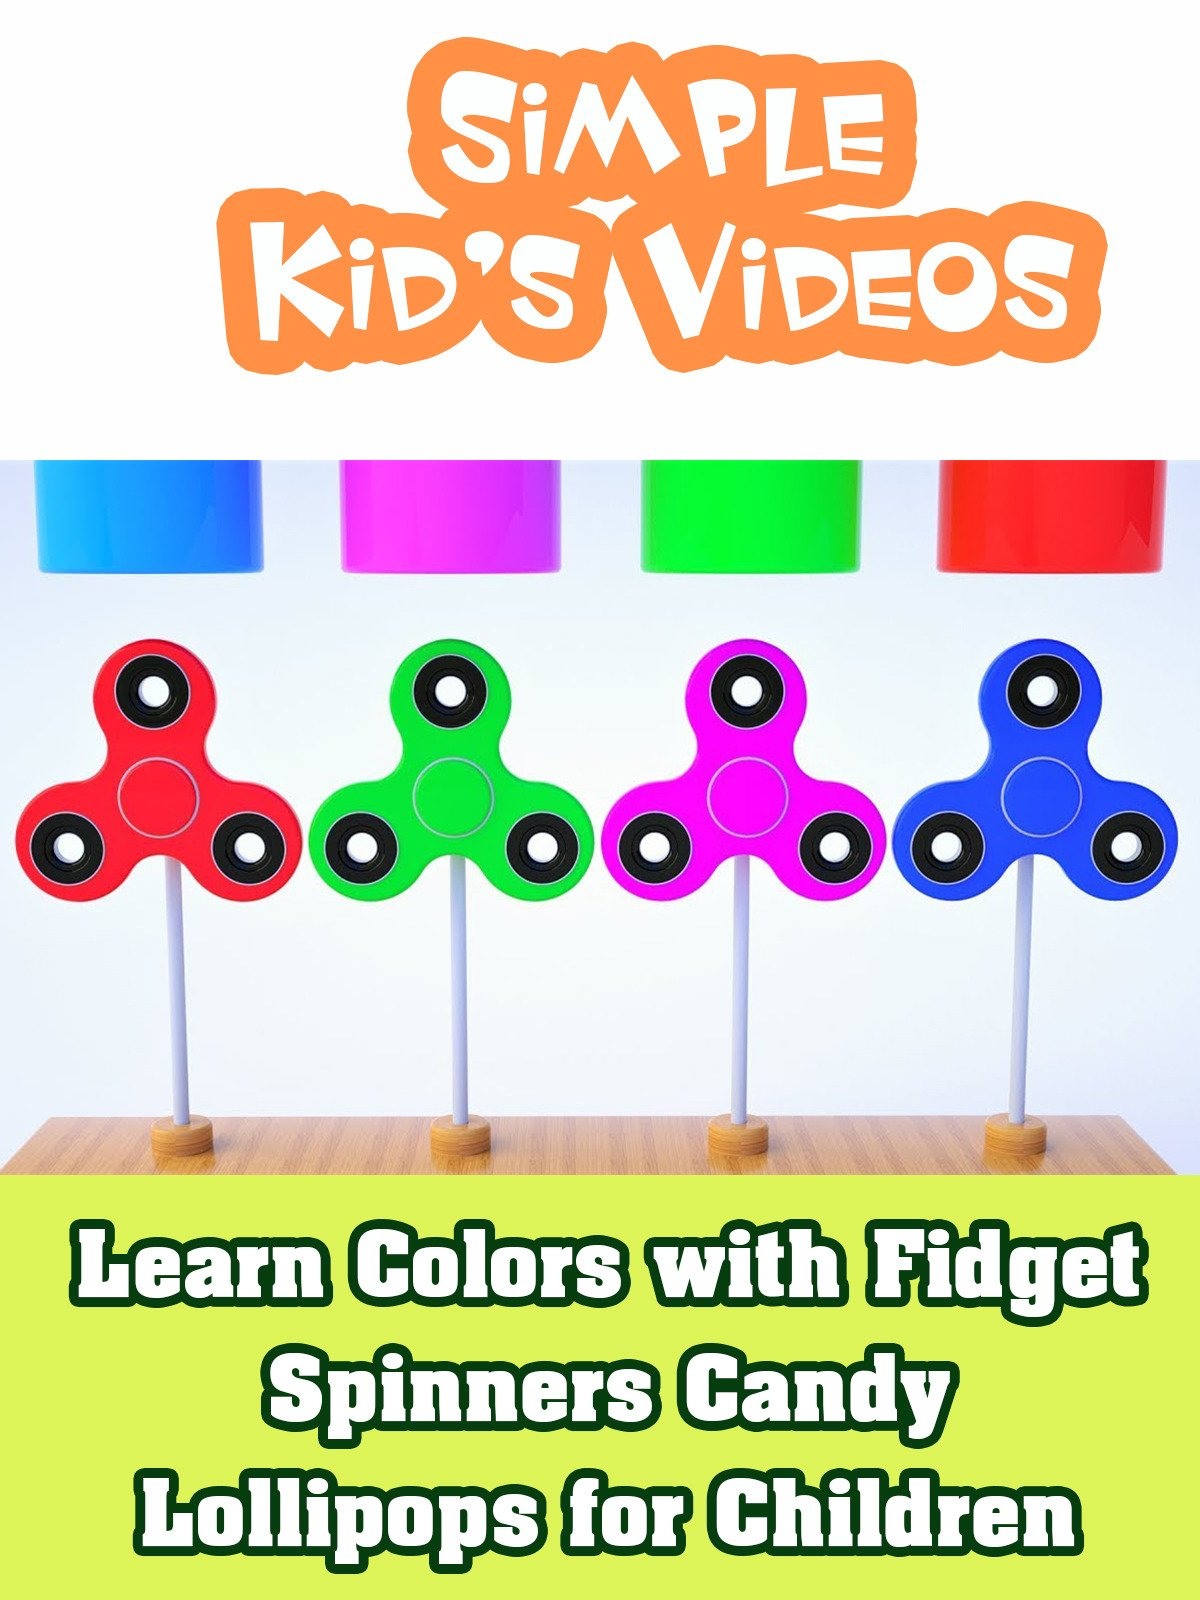 Learn Colors with Fidget Spinners Candy Lollipops for Children